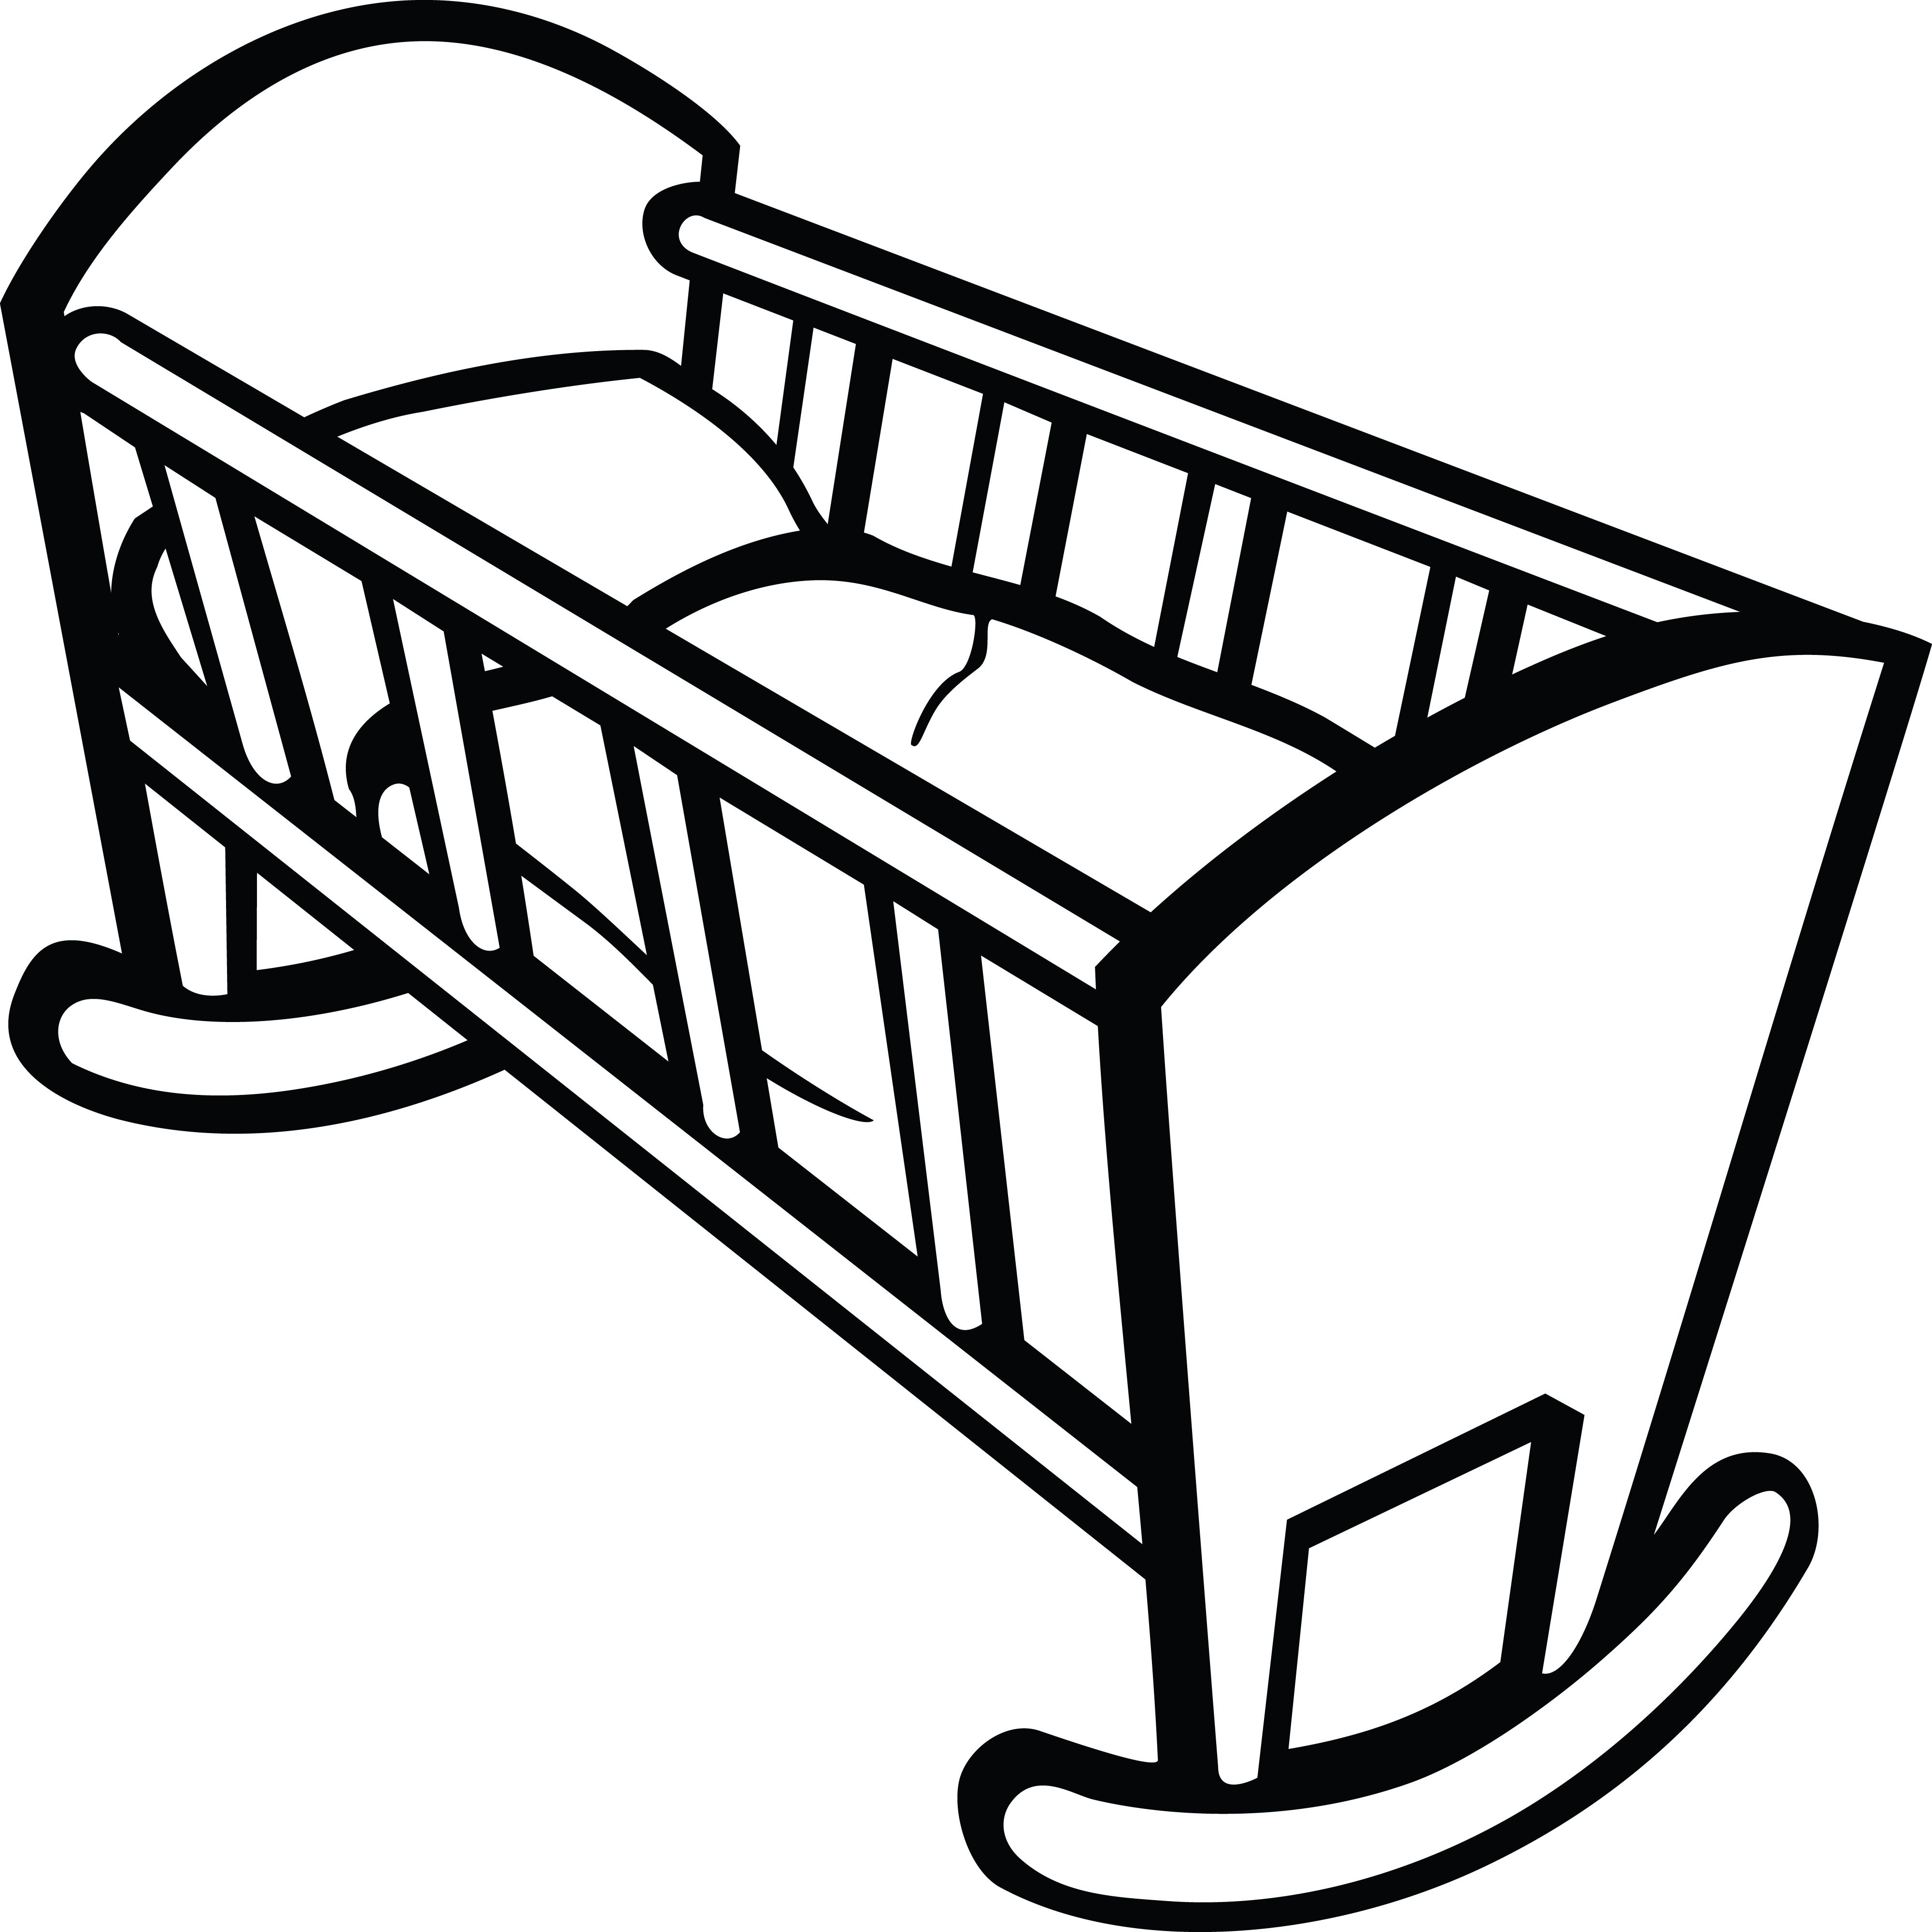 Crib clipart. Of a baby pinterest